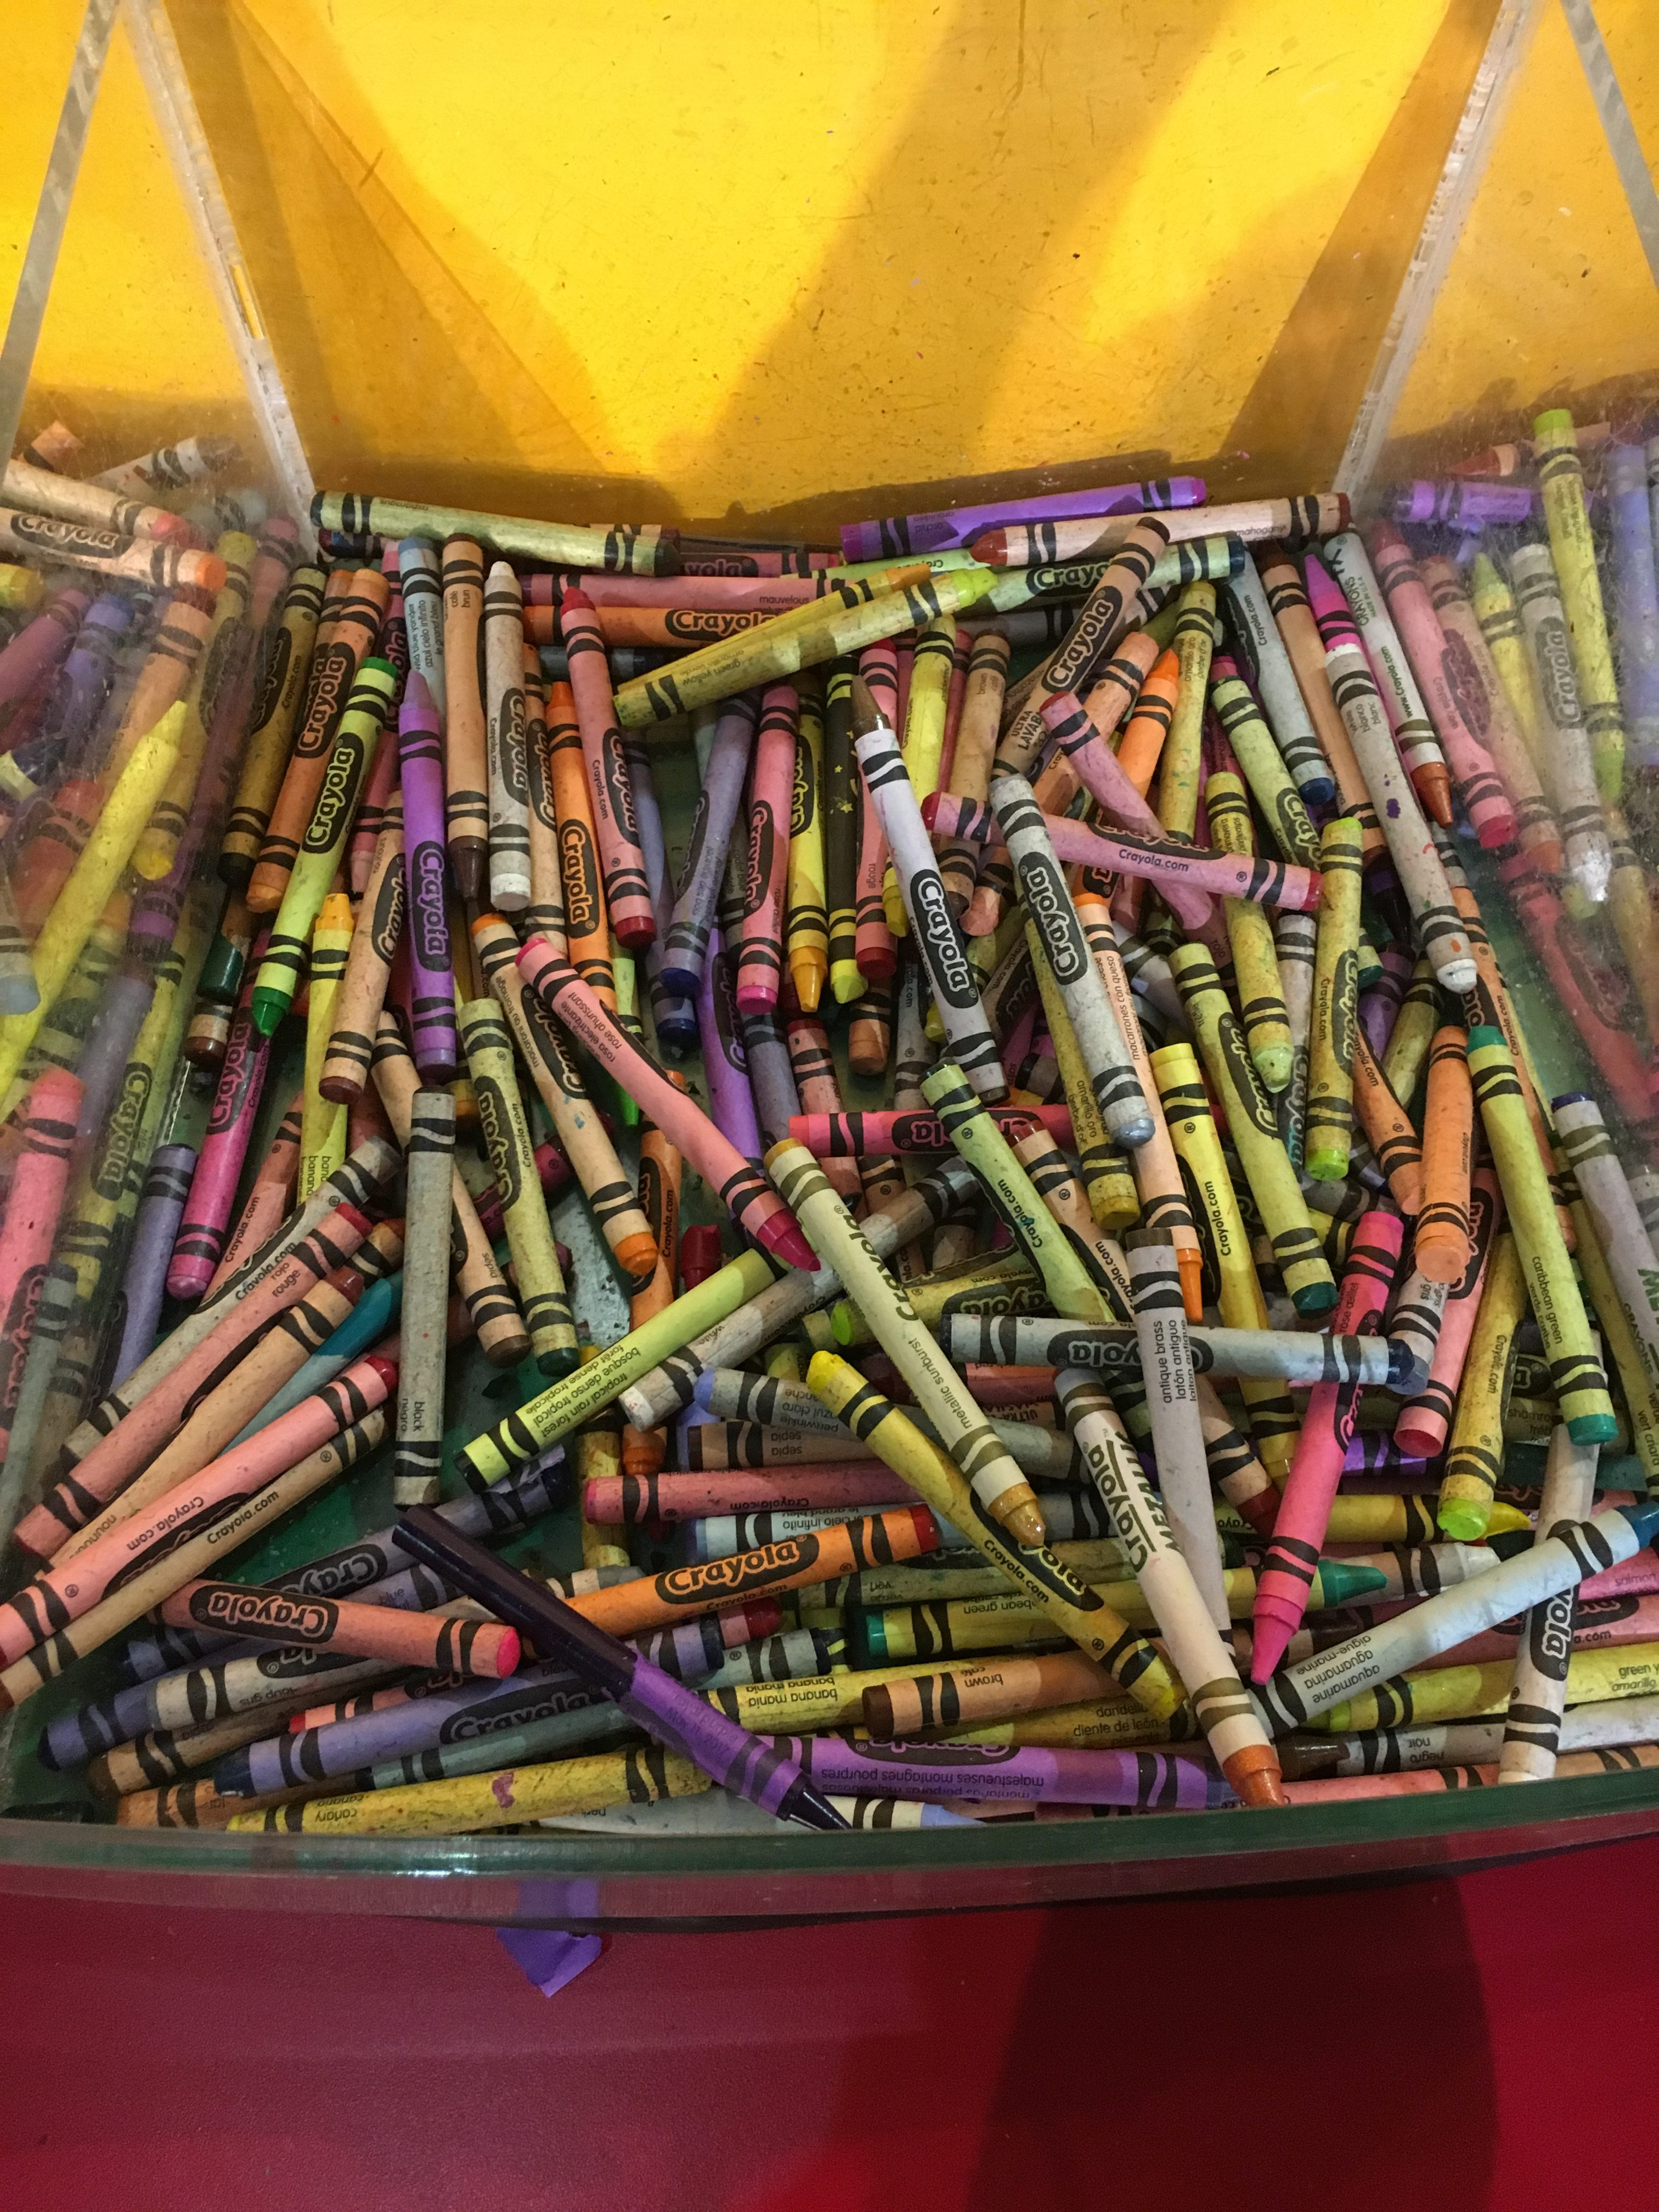 crayola experience with kids: crayons